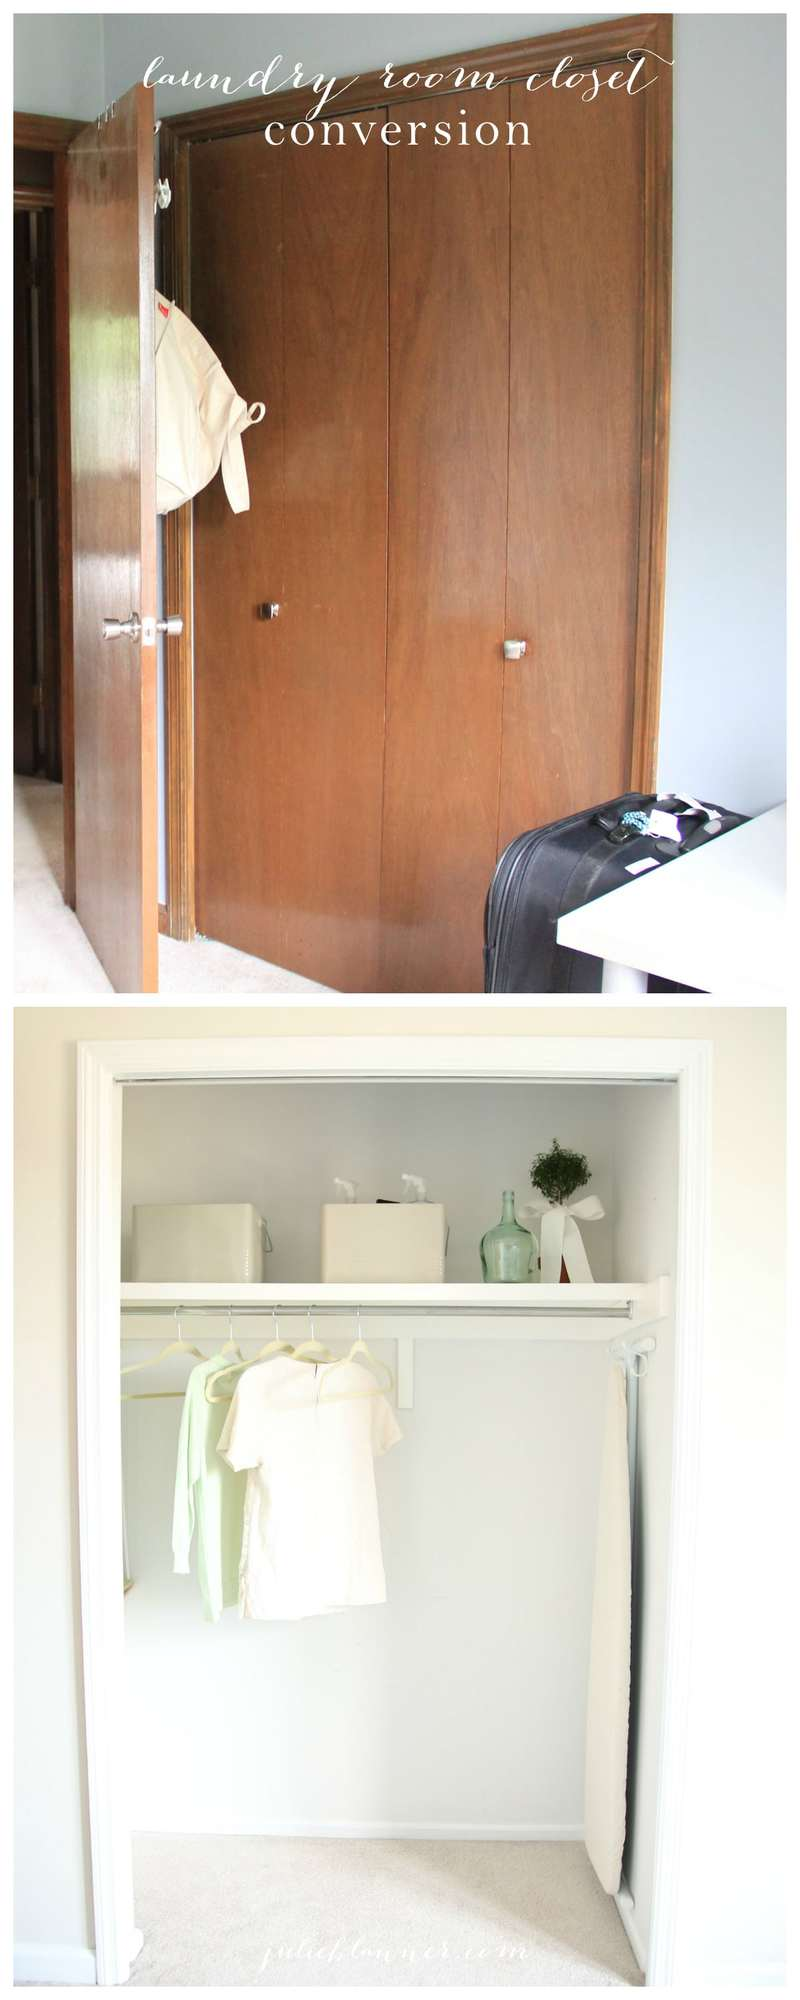 Laundry room closet conversion